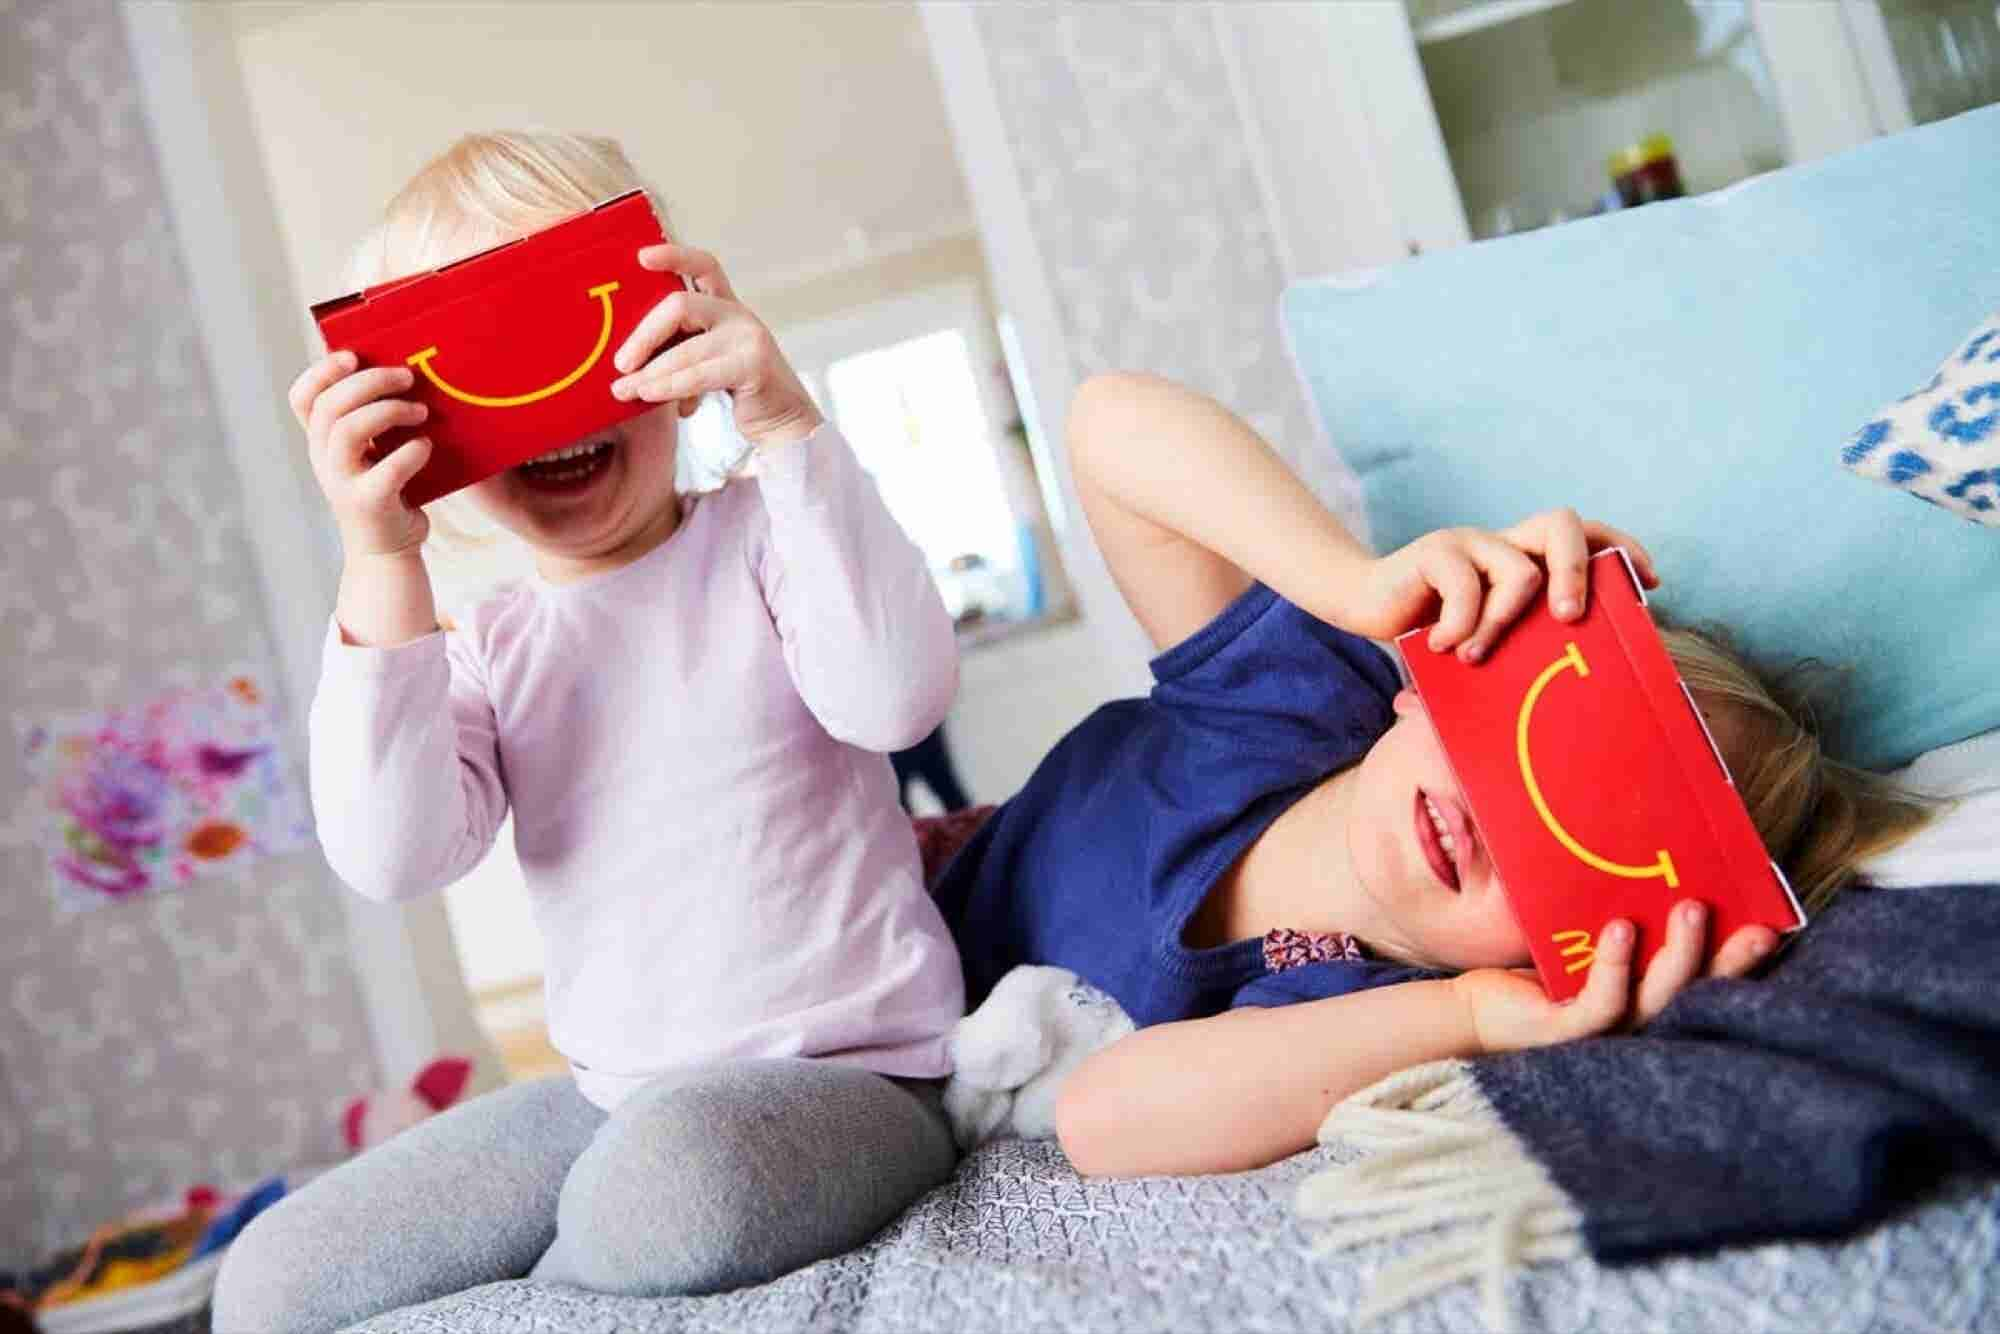 New McDonald's Happy Meal Boxes Turn Into Virtual Reality Headsets